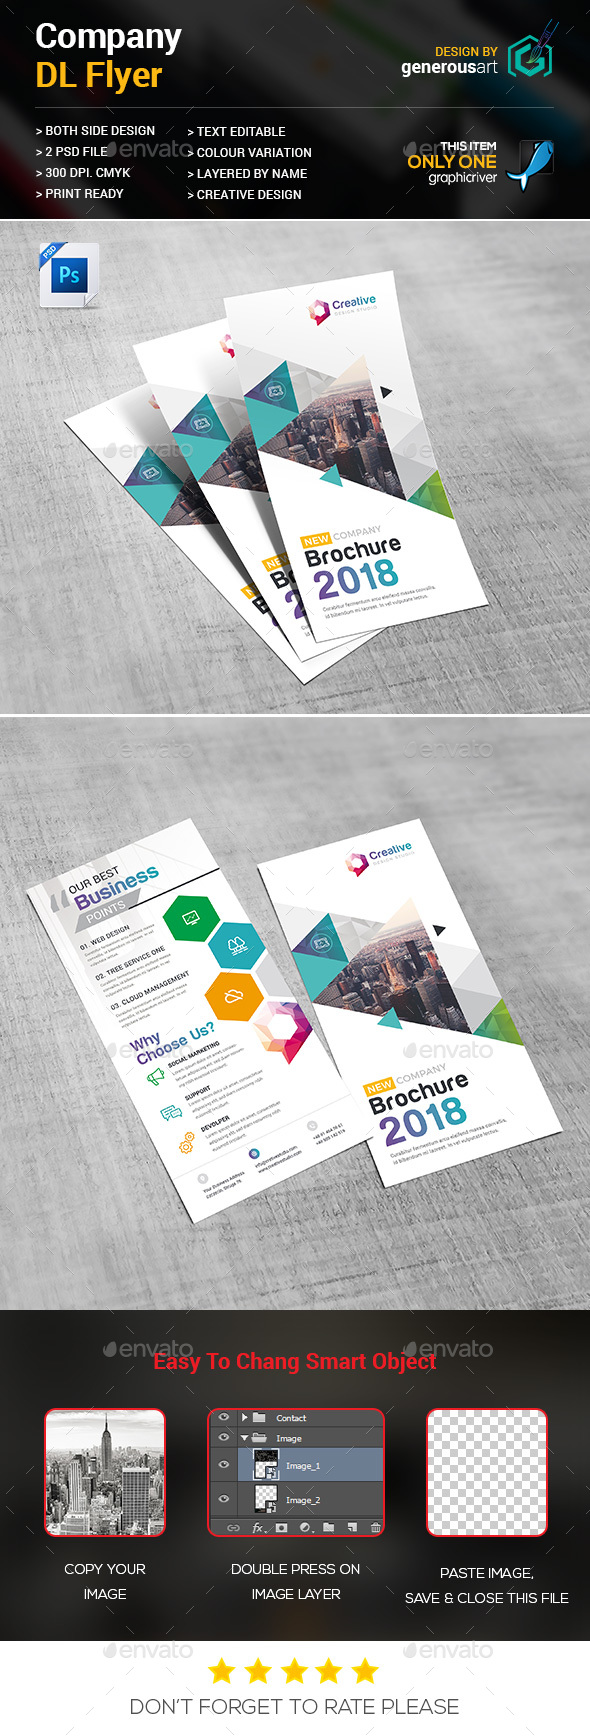 Company DL-Flyer - Corporate Flyers